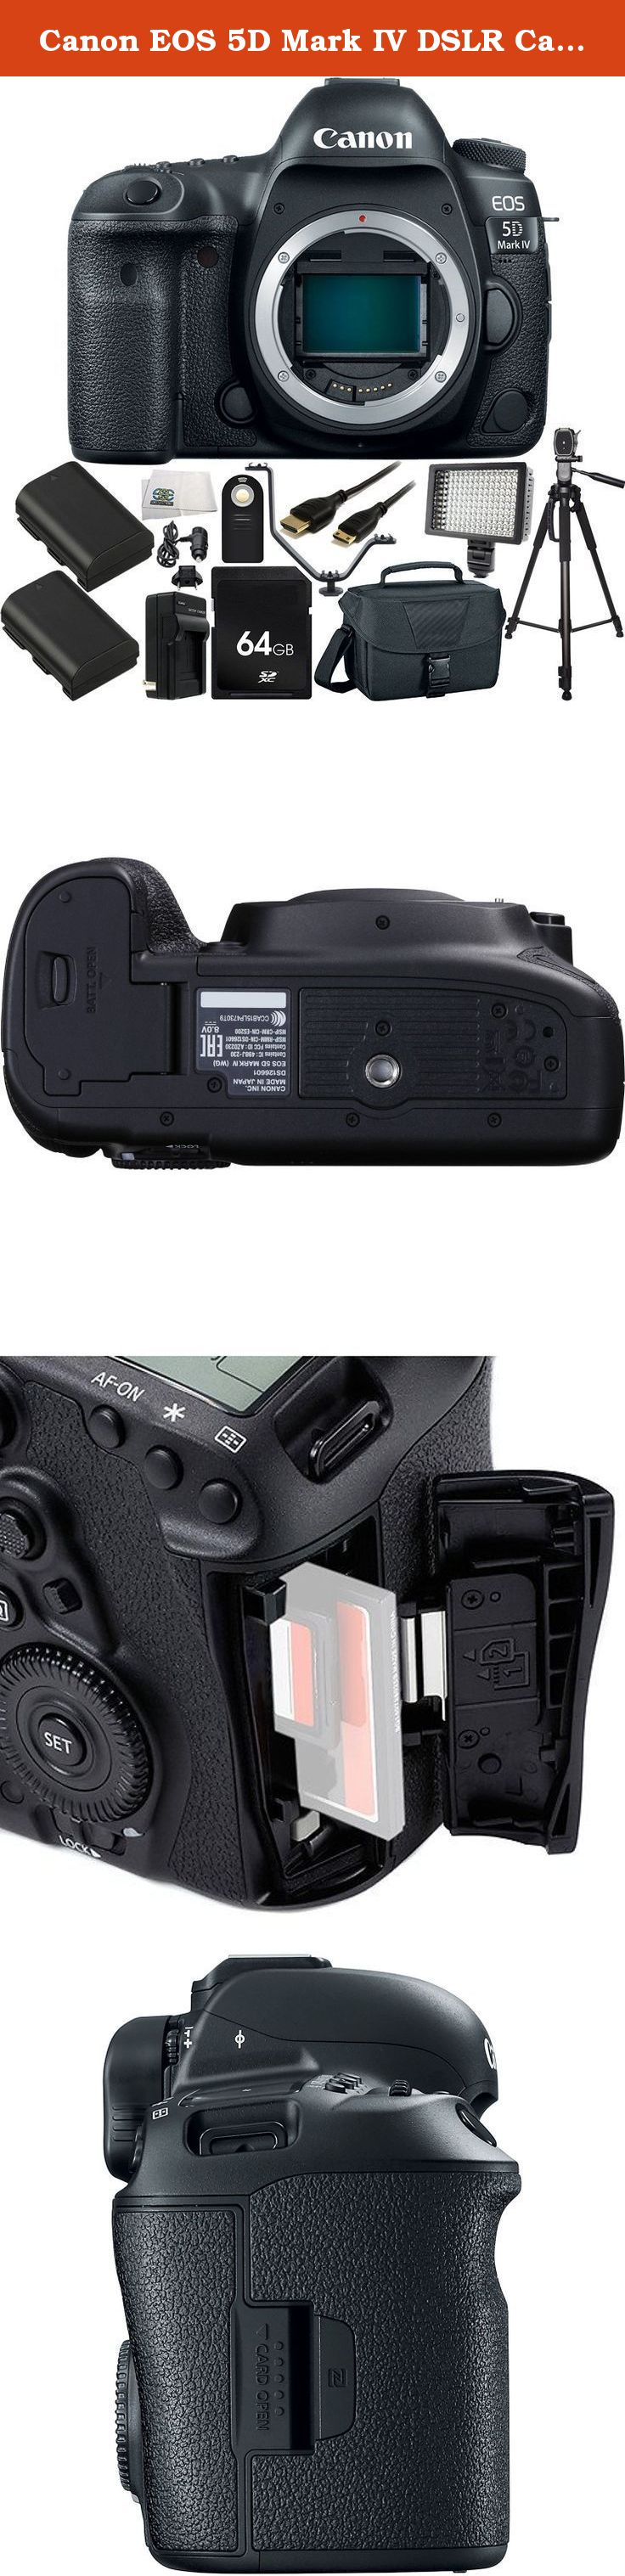 Canon EOS 5D Mark IV DSLR Camera (Body Only) - International Version (No Warranty) 64GB Bundle 13PC Accessory Kit Which Includes 64GB Memory Card + 2 Replacement LP-E6 Batteries + MORE. Continuing on in their legacy of powerful workhorse cameras, Canon has released the 5D Mark IV DSLR which is an outstanding still photography option and an able 4K-capable video machine. This multimedia maven offers a newly developed 30.4MP full-frame CMOS sensor paired with the DIGIC 6+ image processor in...